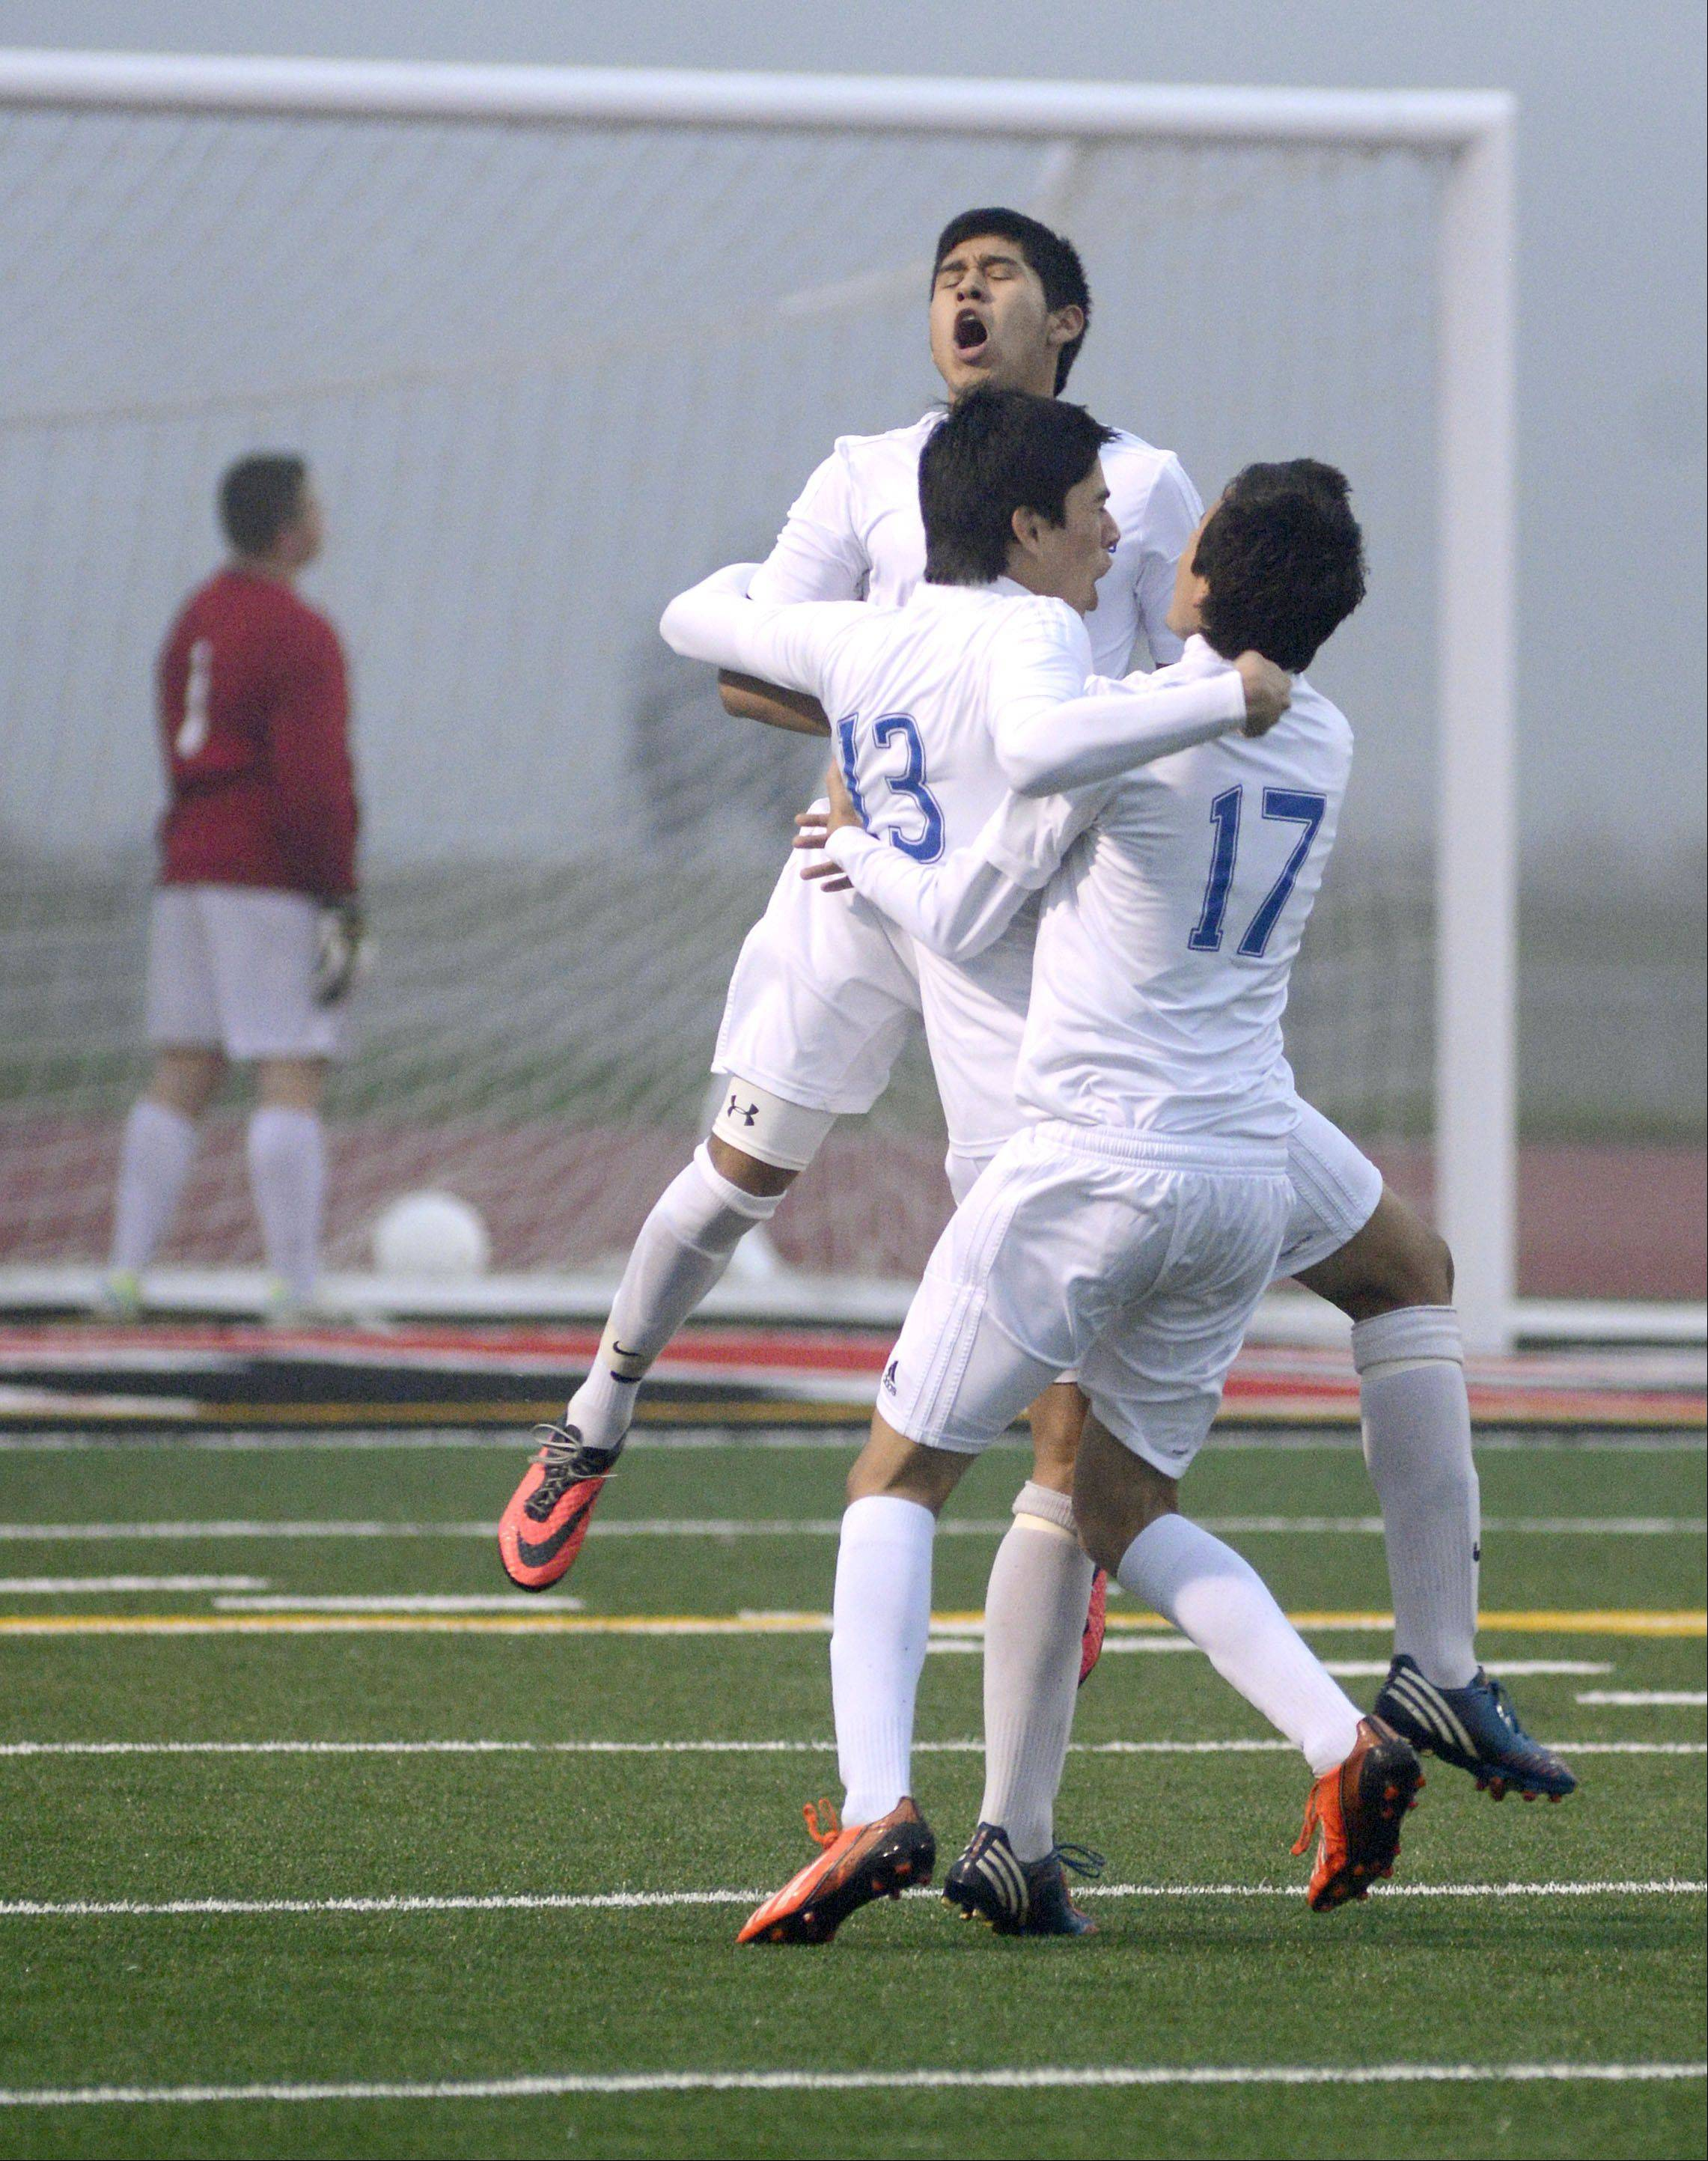 Larkin's Hector Mendoza (13) is congratulated by teammates Gonsalo Garcia, left, and Fredy Jungo after scoring the first goal for the Royals in the first half as Hononegah goalie Henry Reynolds stands in the net at the Huntley sectional semifinals on Wednesday.